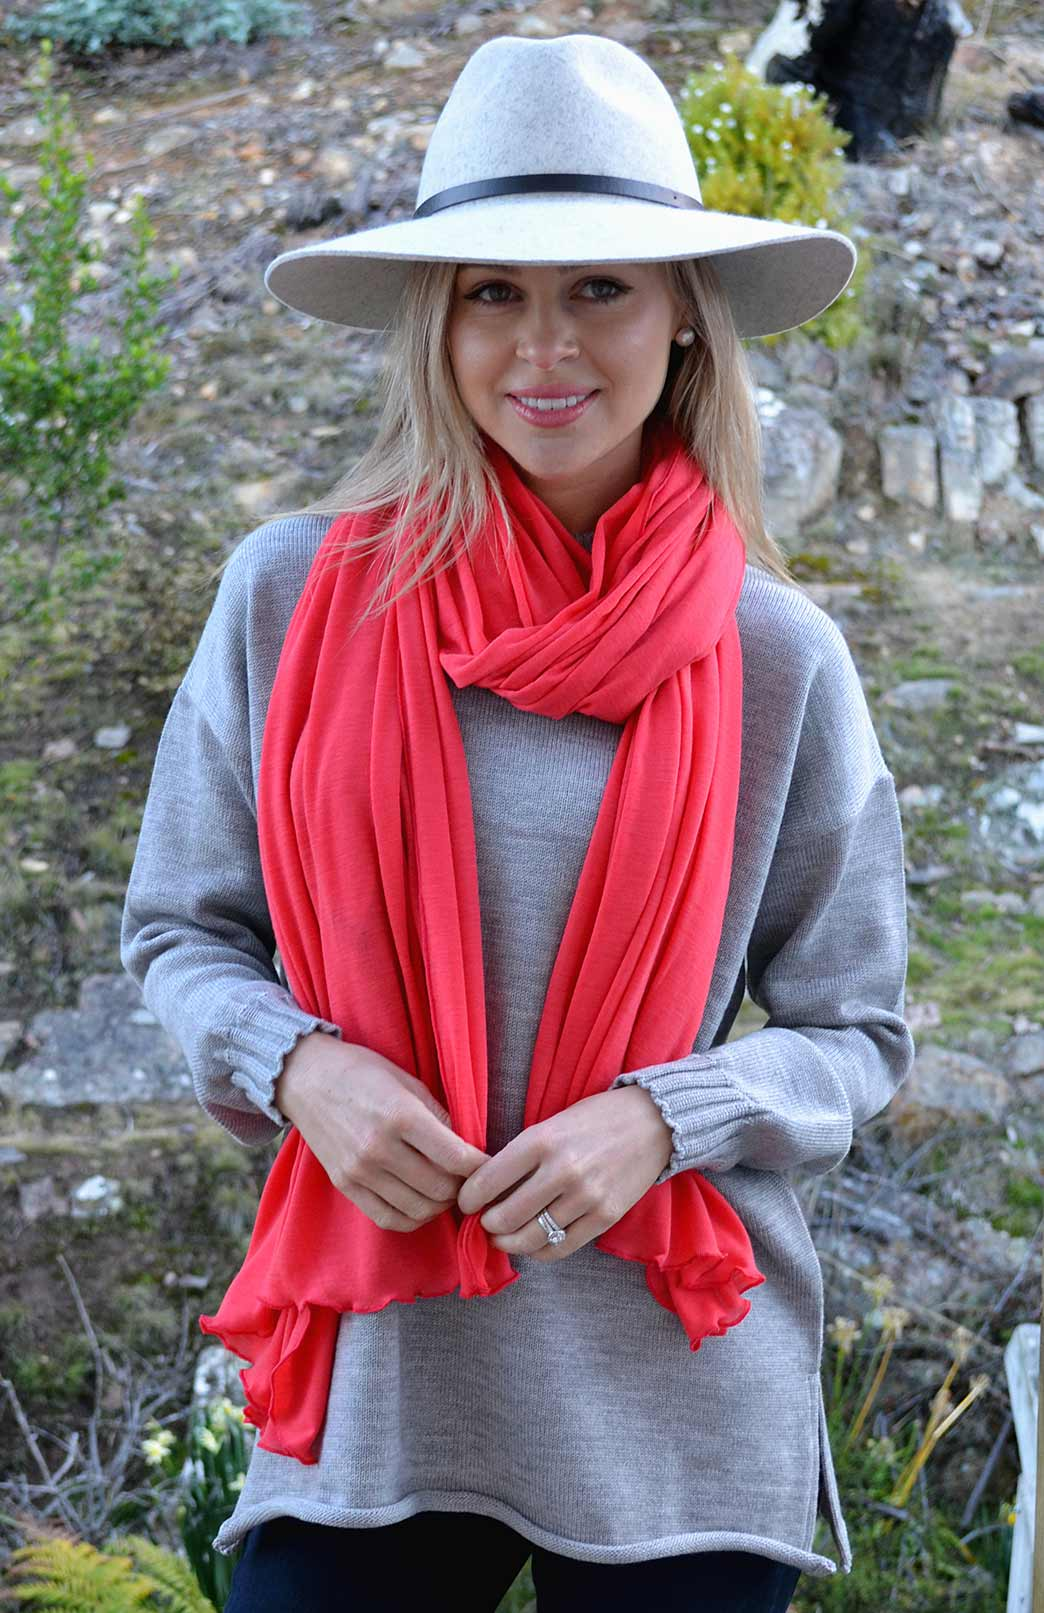 Women's Superfine Merino Wool Classic Wide Scarf - Watermelon Pink